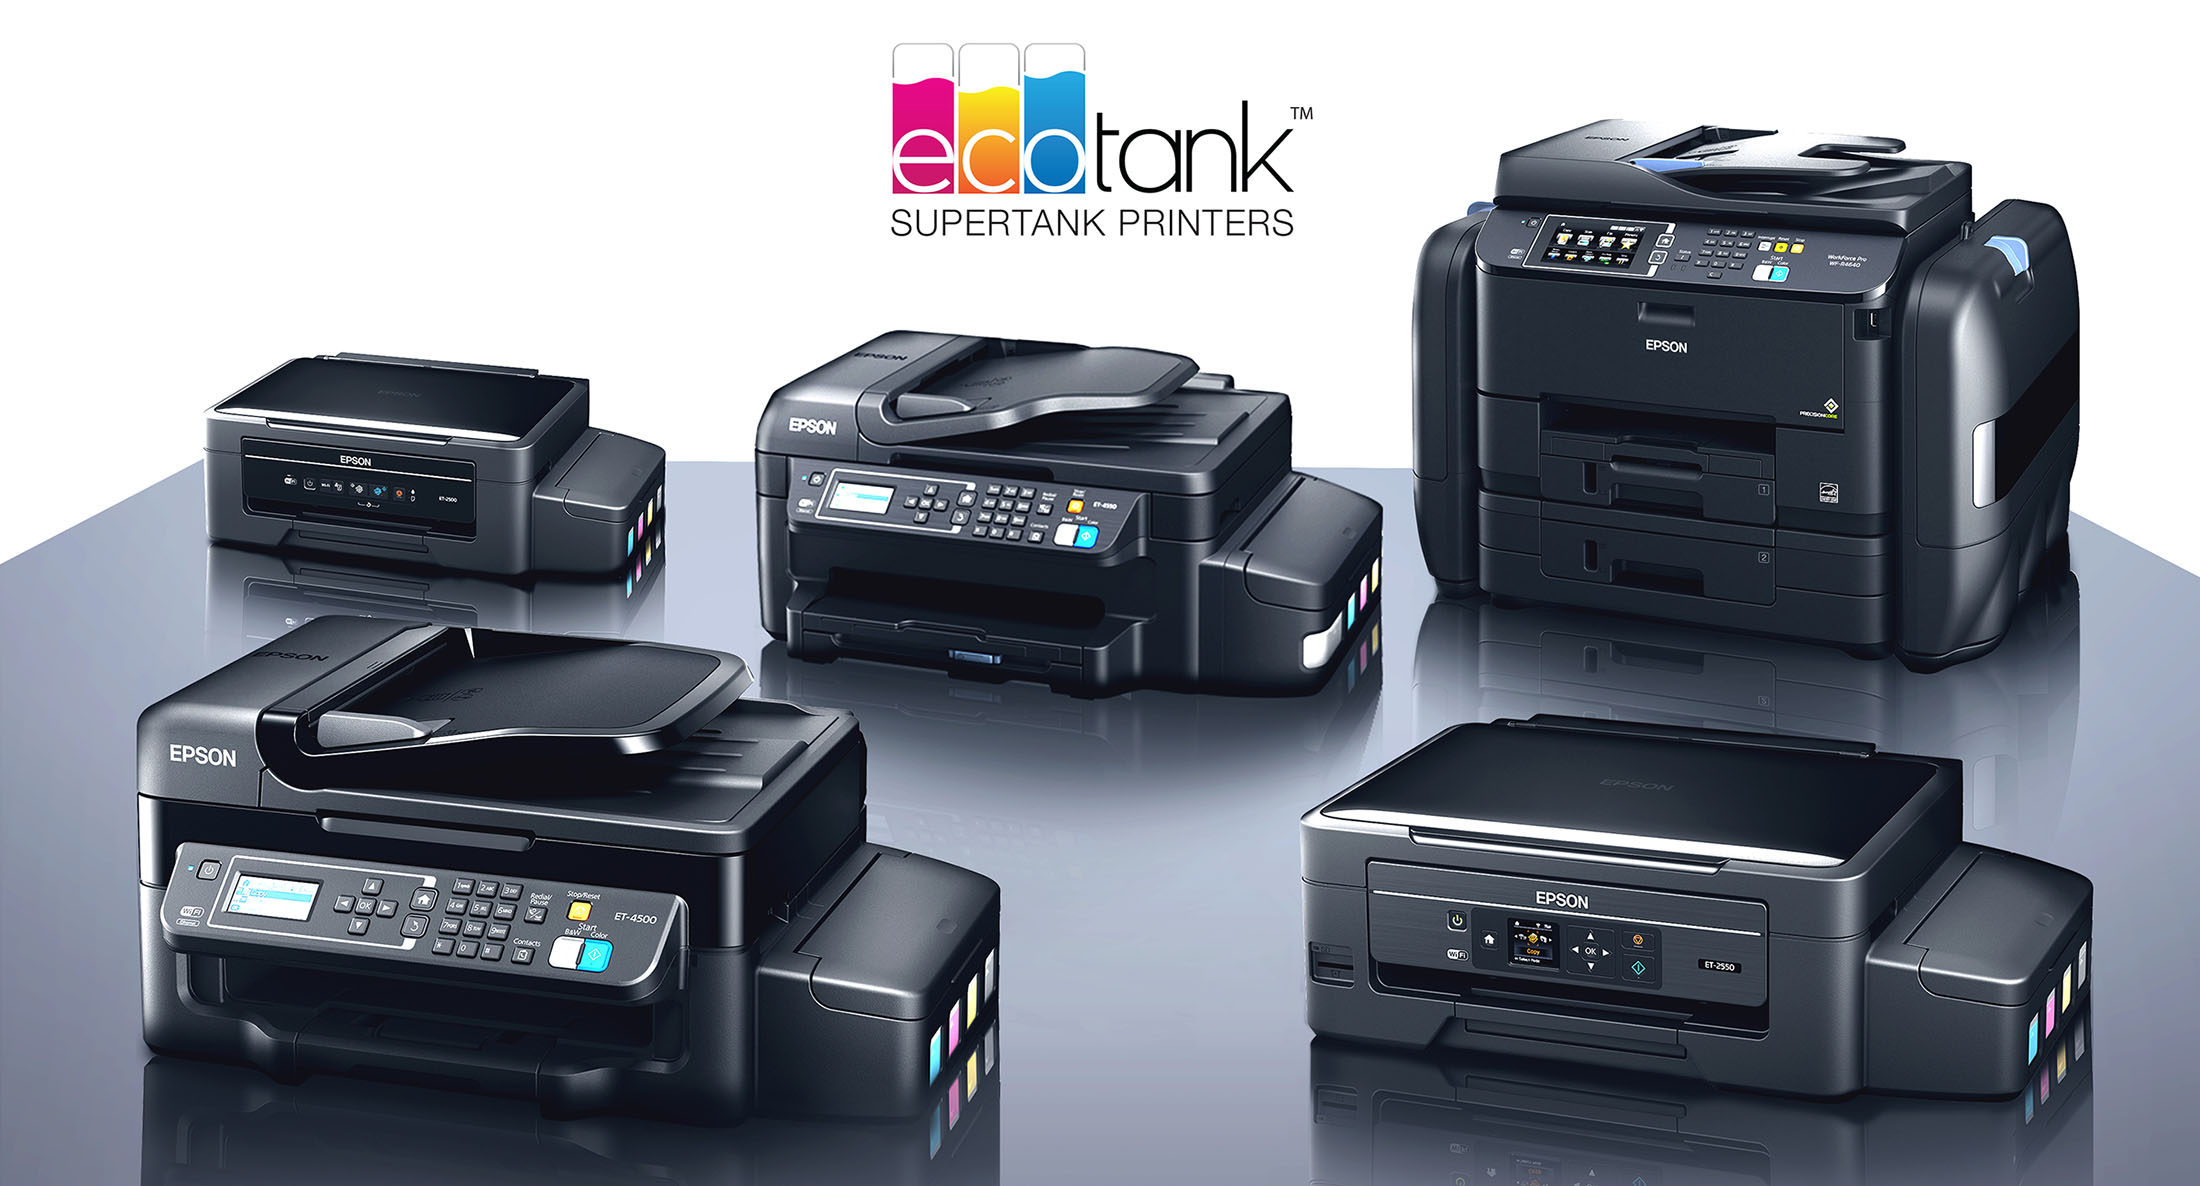 wink printer solutions epson ecotank printers. Black Bedroom Furniture Sets. Home Design Ideas